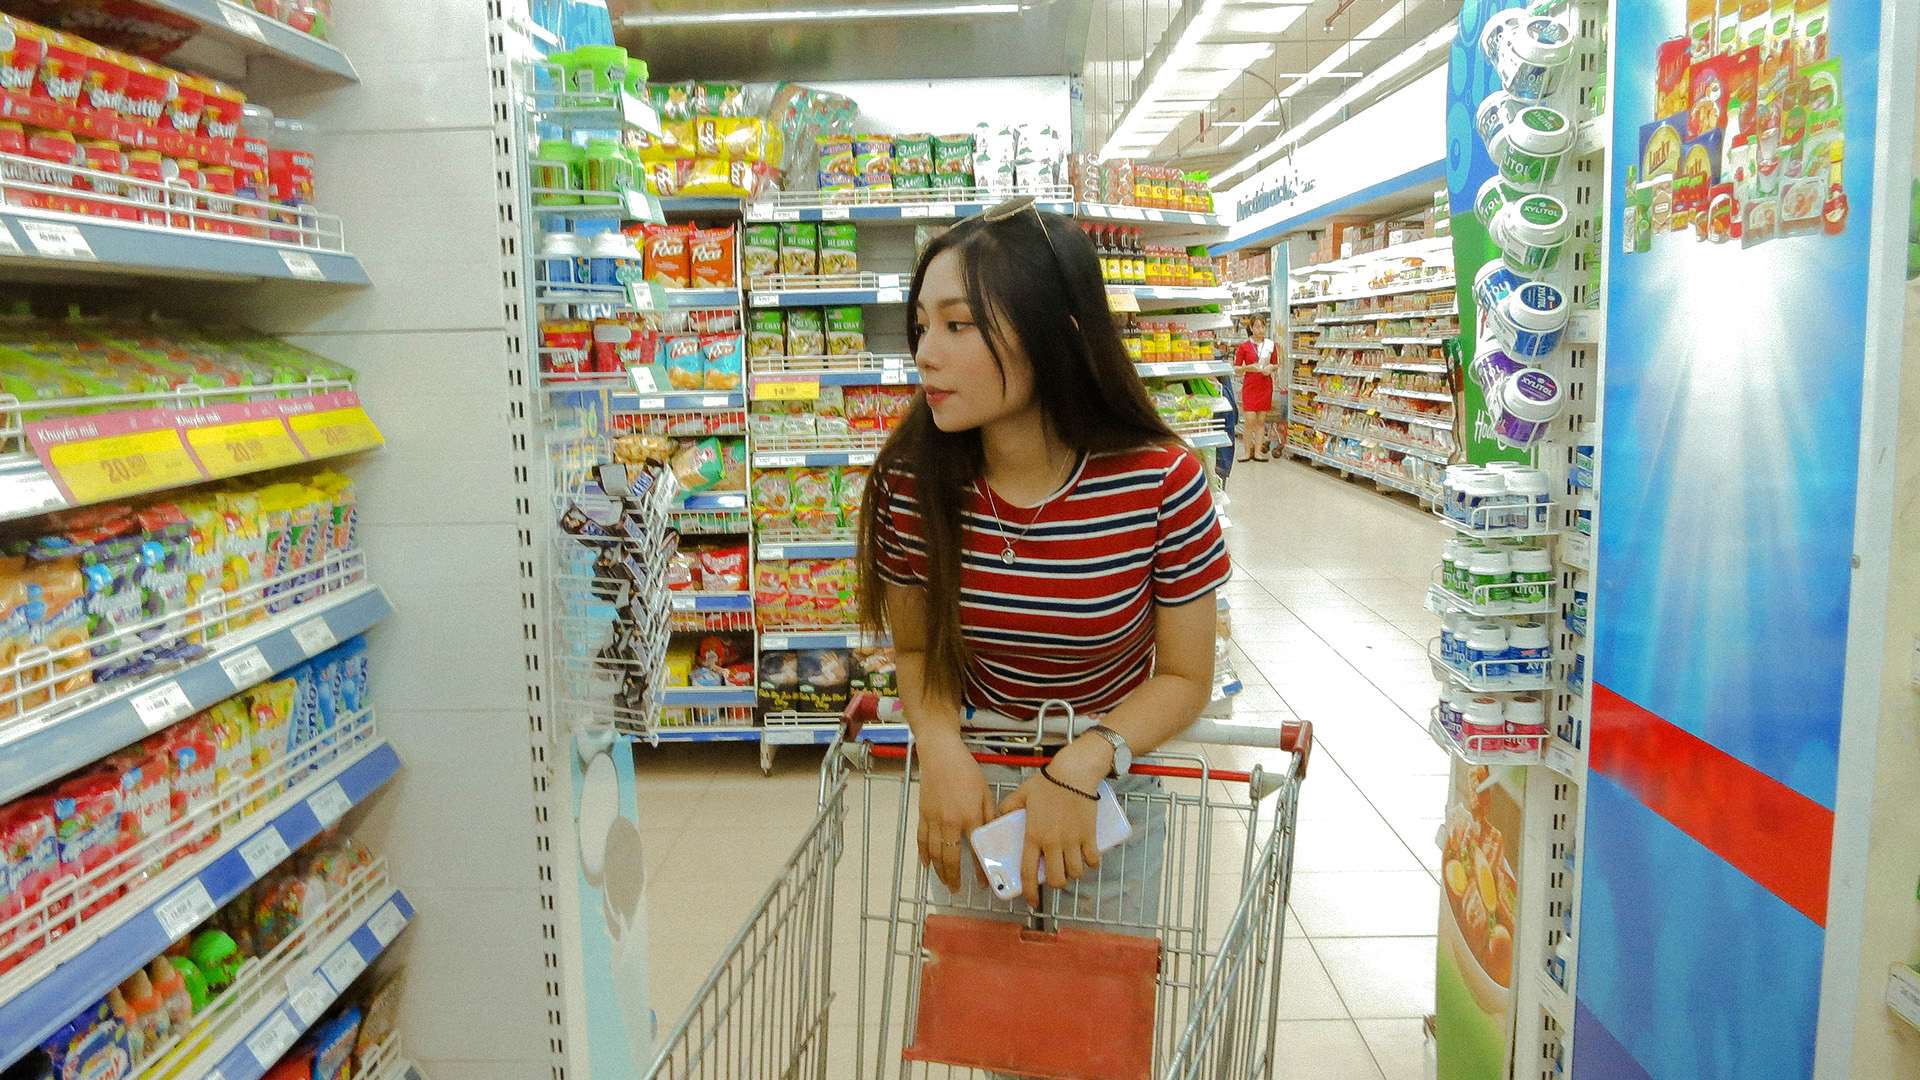 Understanding consumer insights - snacking trends in Asia Pacific